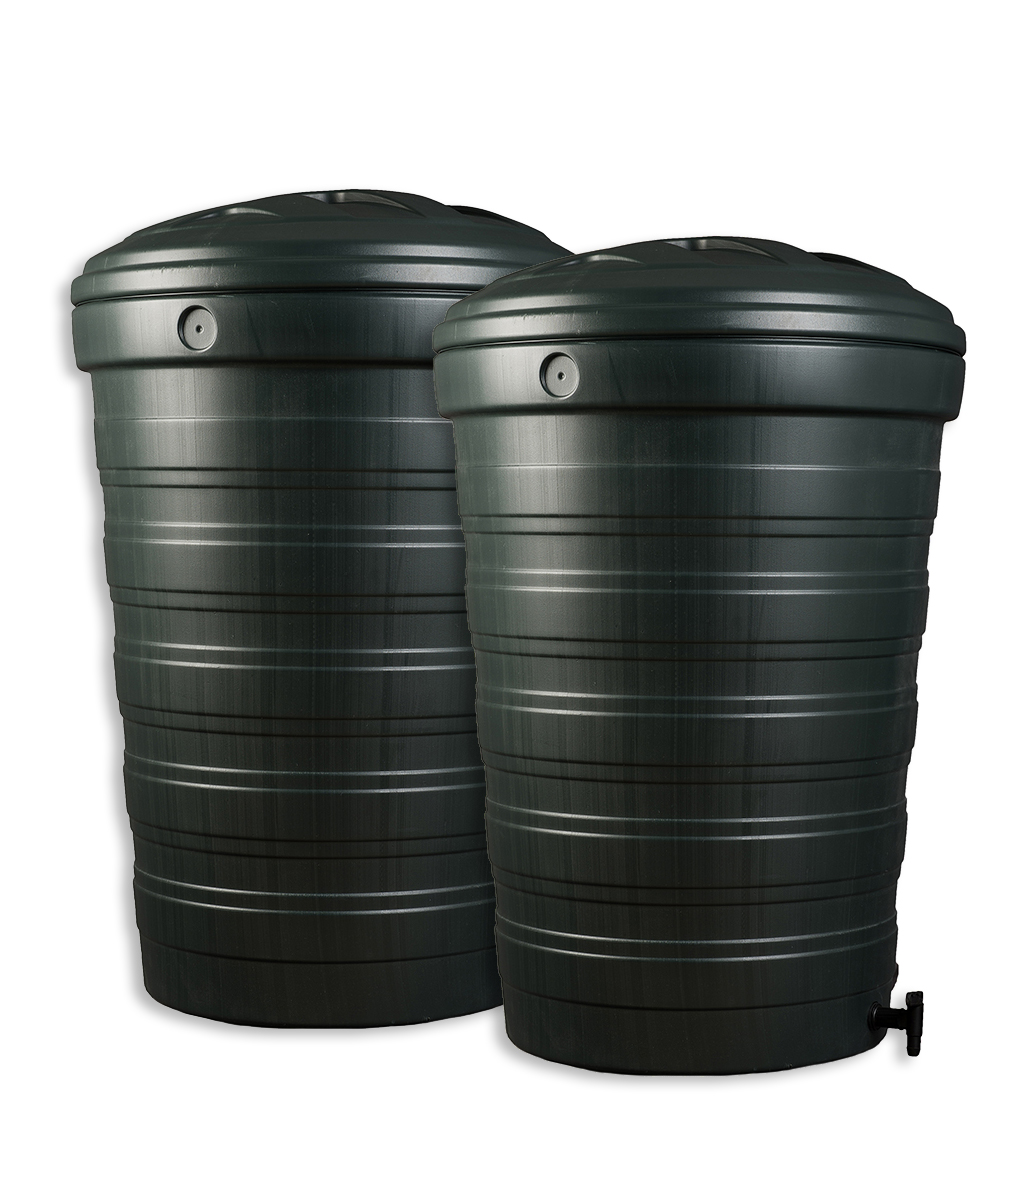 200 Litre Water Butt Set  Buy One Get One Half Price -9365